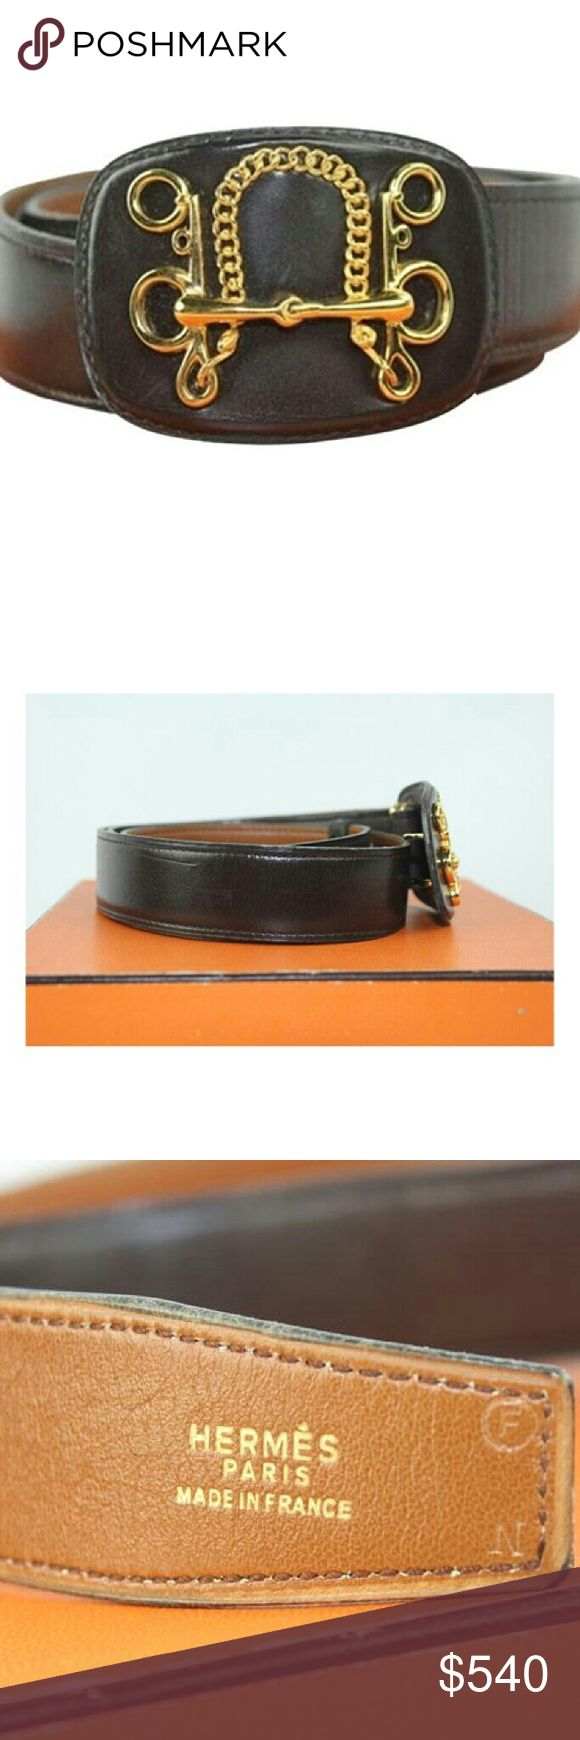 Hermes Belt Knot Lasso Discontinued HTL86 Hermes Belt Knot Lasso Discontinued NO BOX This item will ship immediately!! Previously owned. Made in: France Signs of Wear: Marks on exterior and interior. Scratches on buckle hardware. Scratches on exterior and interior. Scuff Marks on exterior. Creasing. Hermes Accessories Belts